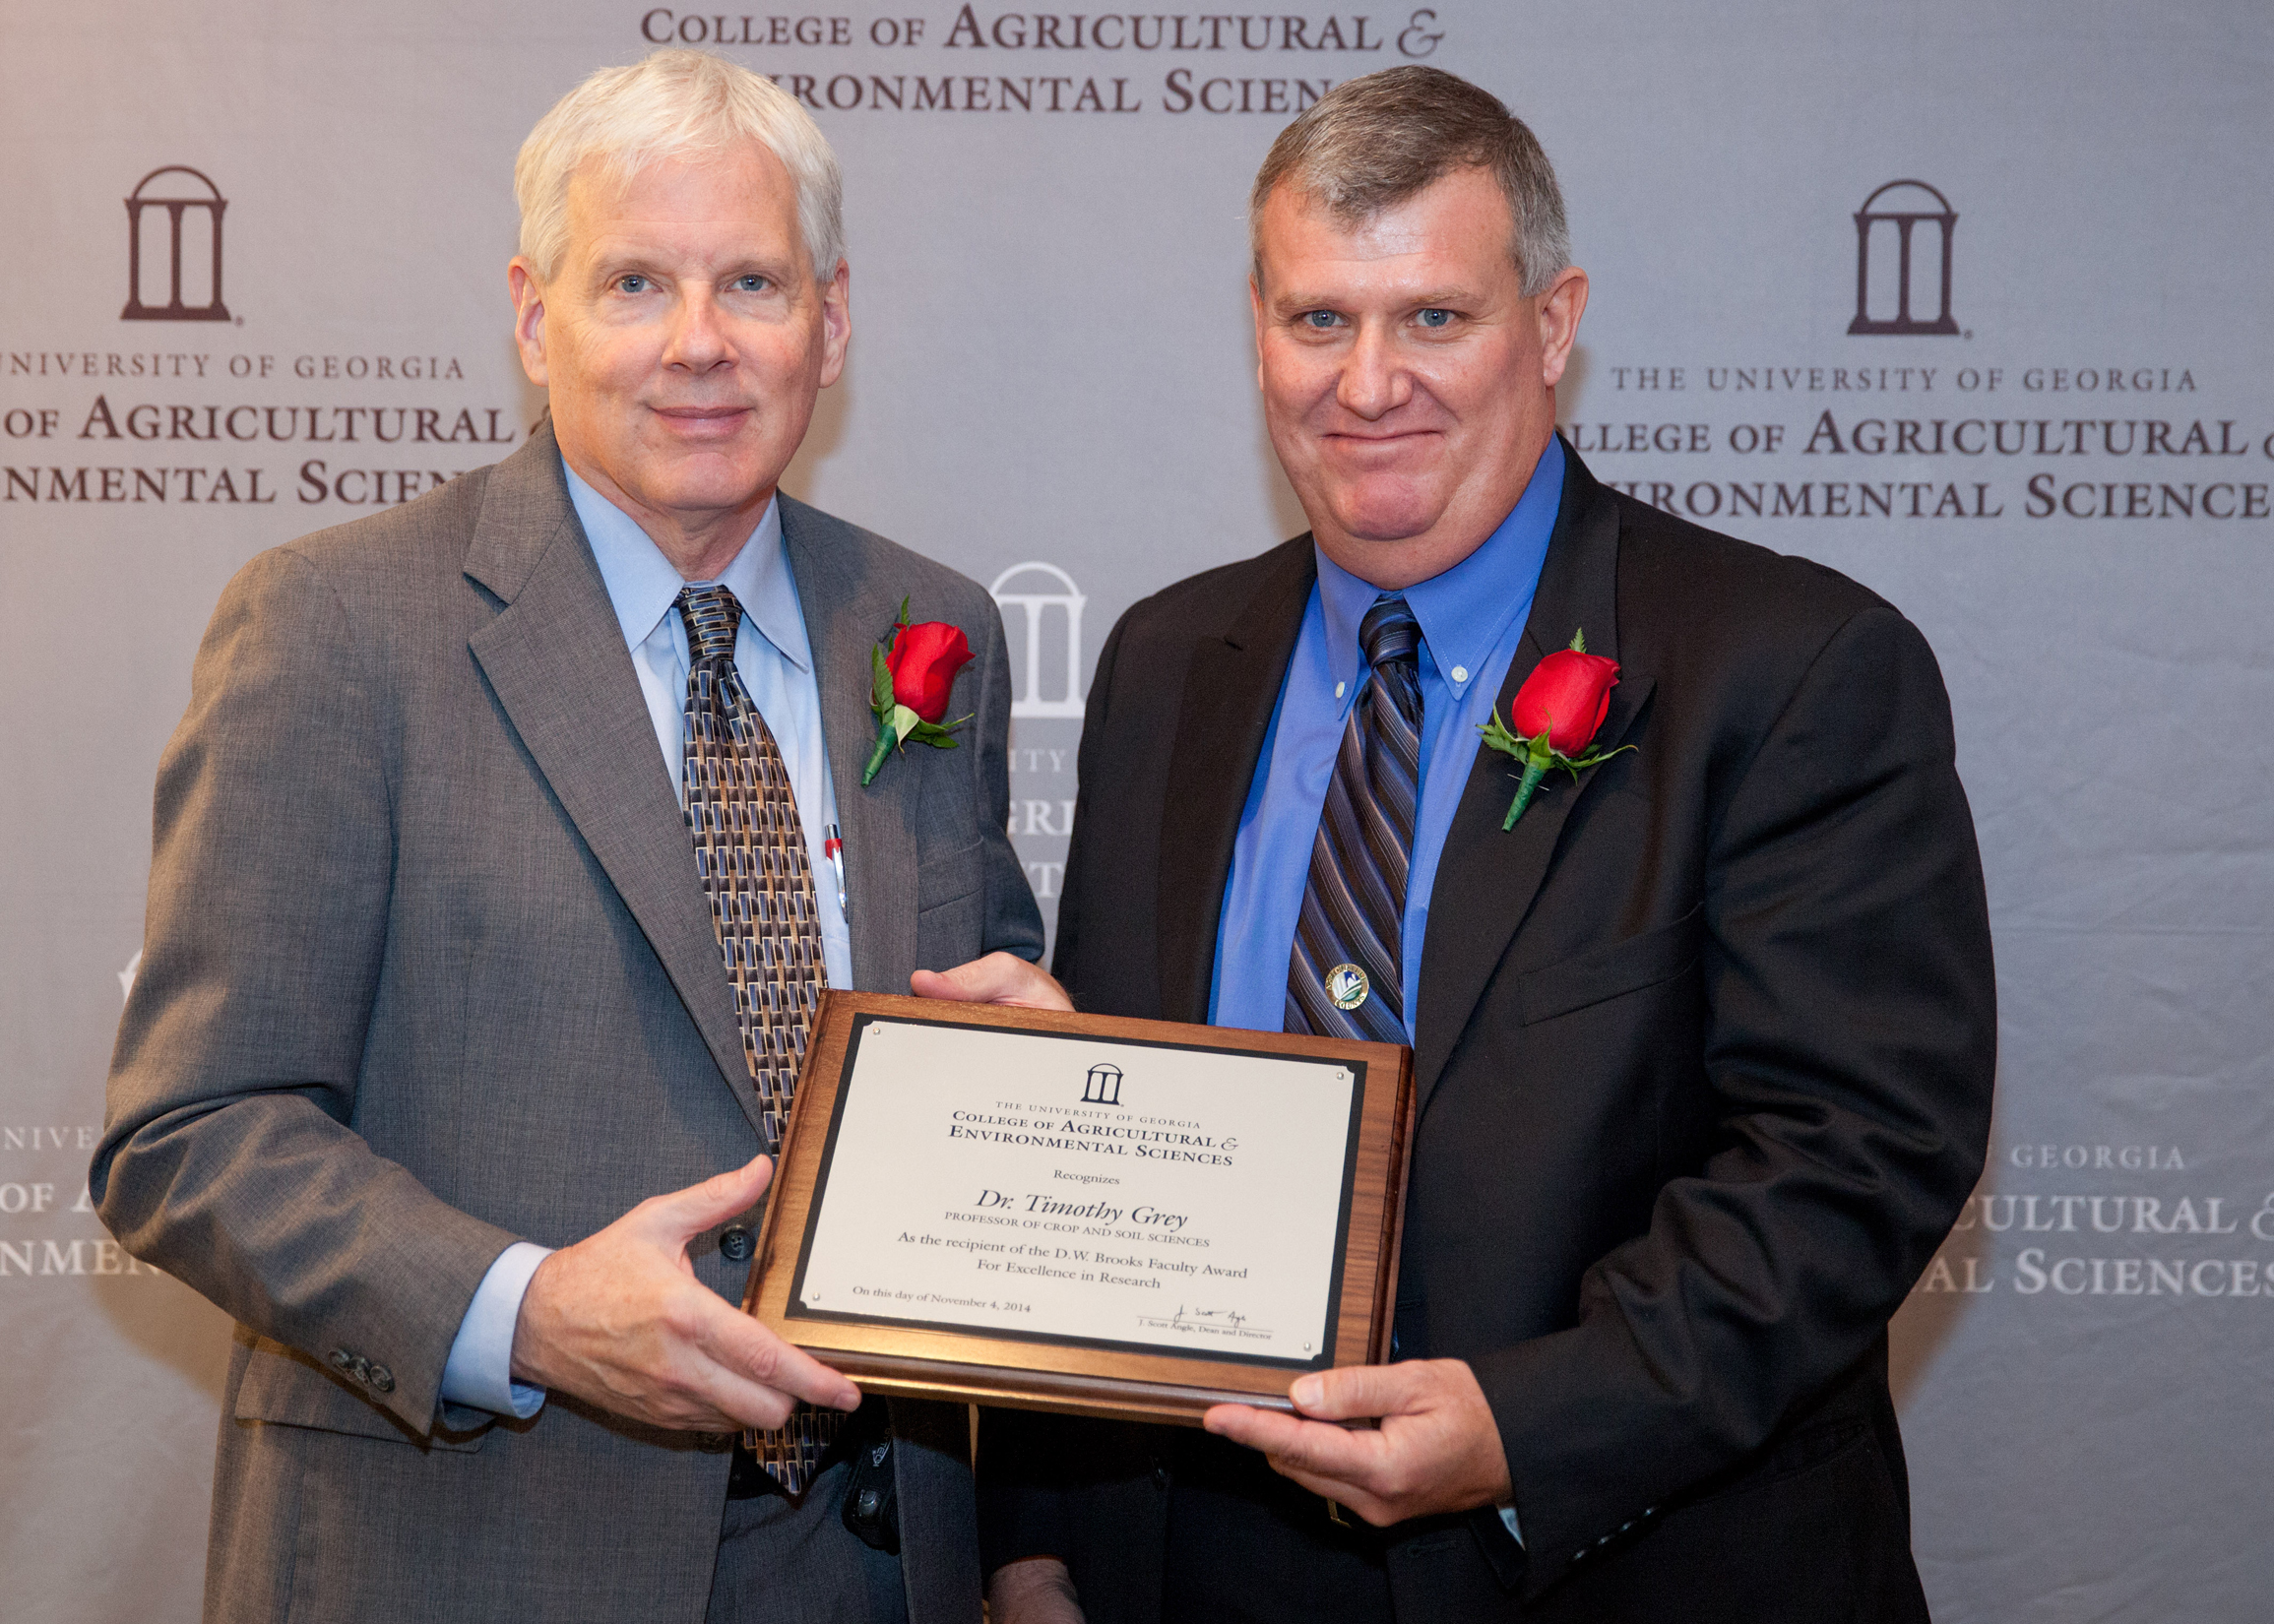 Dean J. Scott Angle presents Professor Timothy Grey, of the Department of Crop and Soil Sciences, with the D.W. Brooks Faculty Award for Excellence in Research. The award recognizes his work combatting herbicide-resistant Palmer amaranth, or pigweed, and developing weed management strategies to replace a recently banned soil fumigant—methyl bromide.